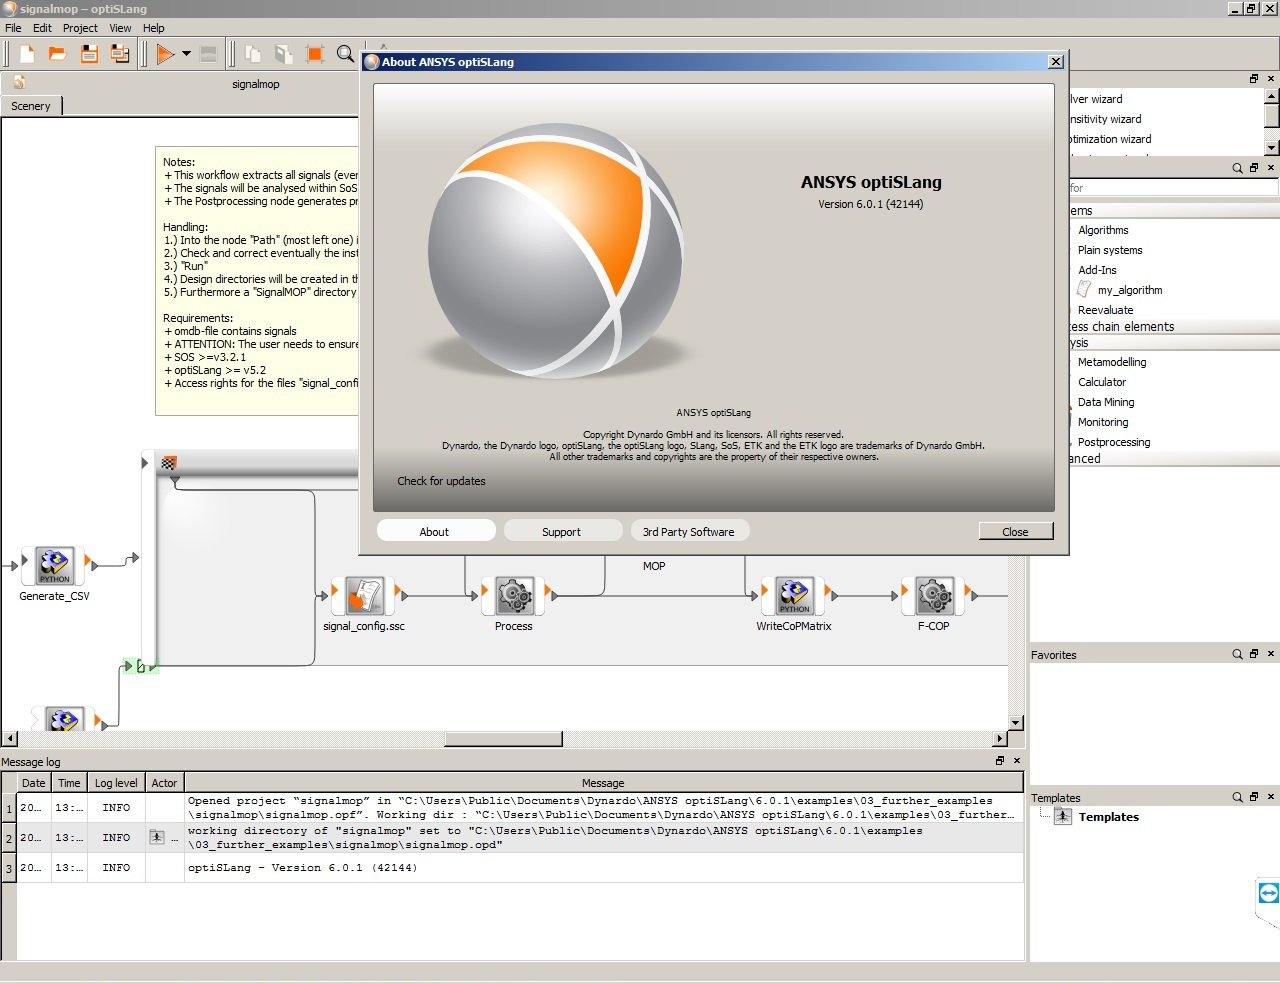 Working with ANSYS optiSLang 6.0.1.42144 Win-Linux x64 full license